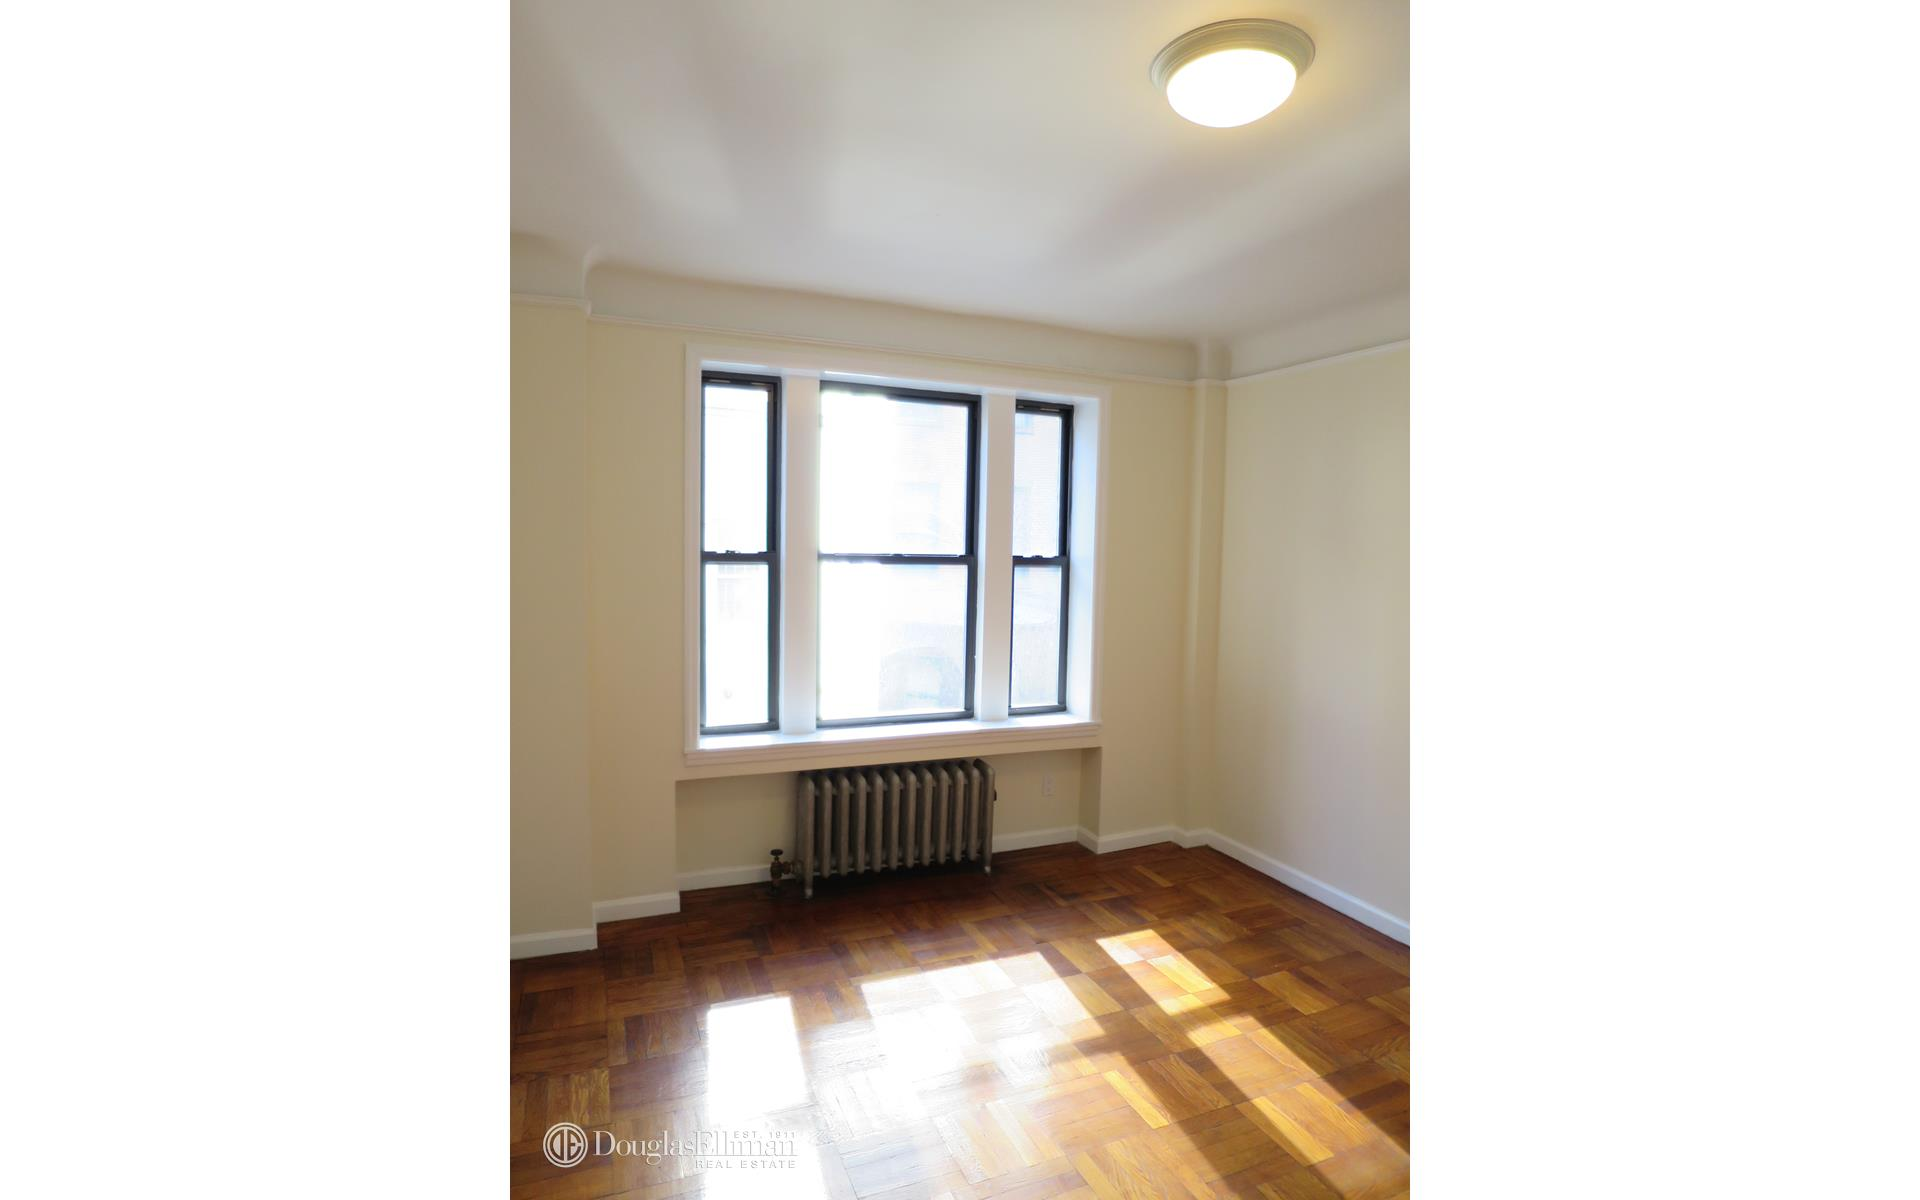 Midtown 2 Bedroom Rental At 55 W 55 St New York NY 10019 4B 4150 Apart